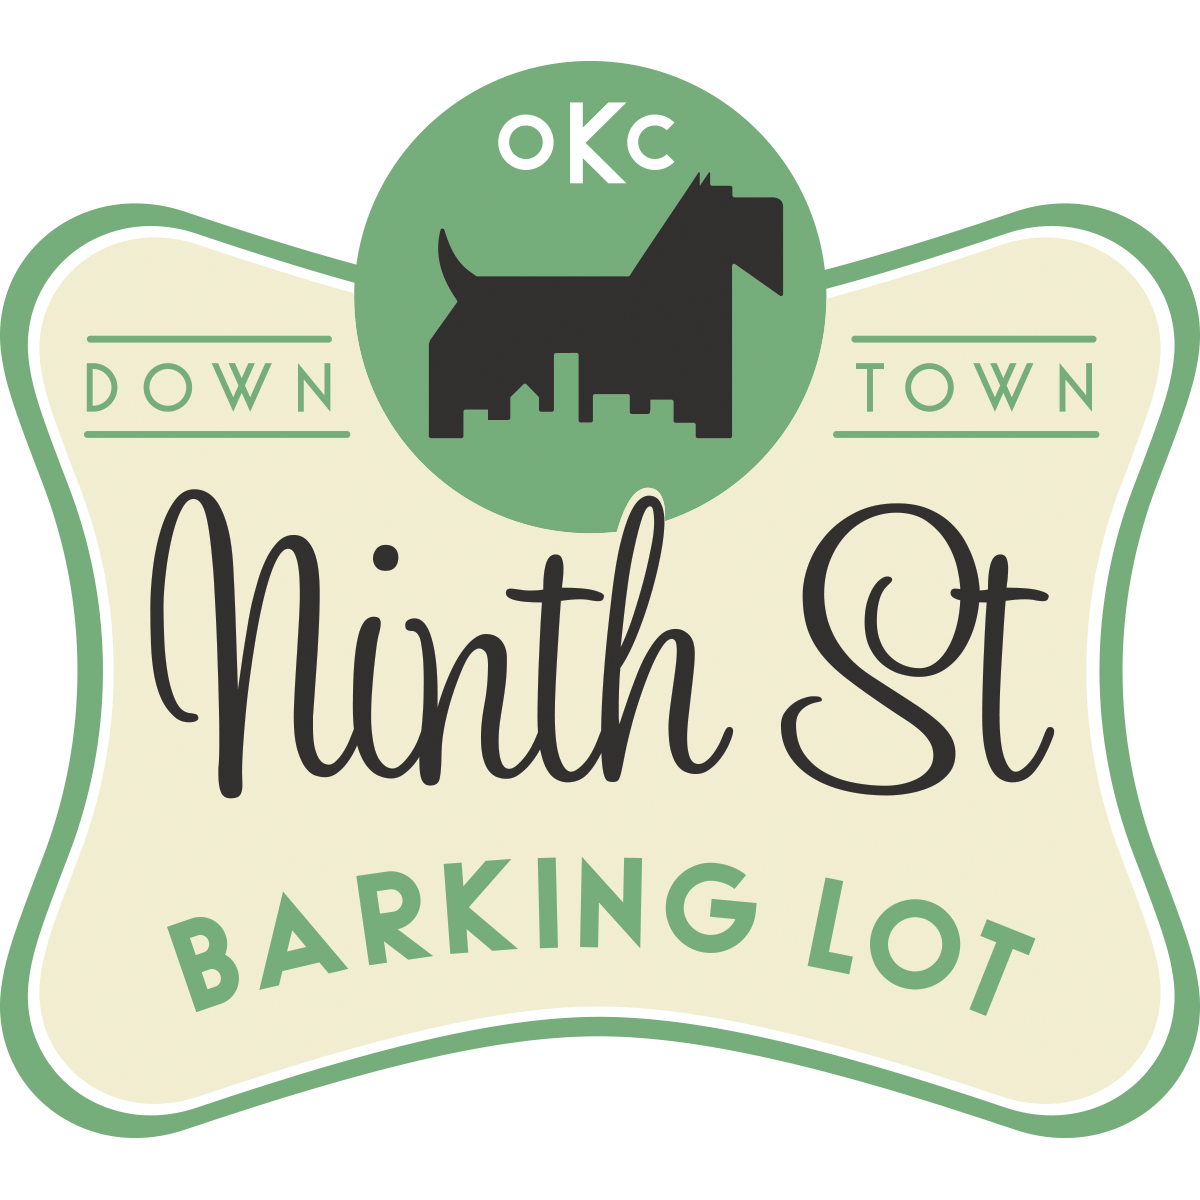 Ninth Street Barking Lot